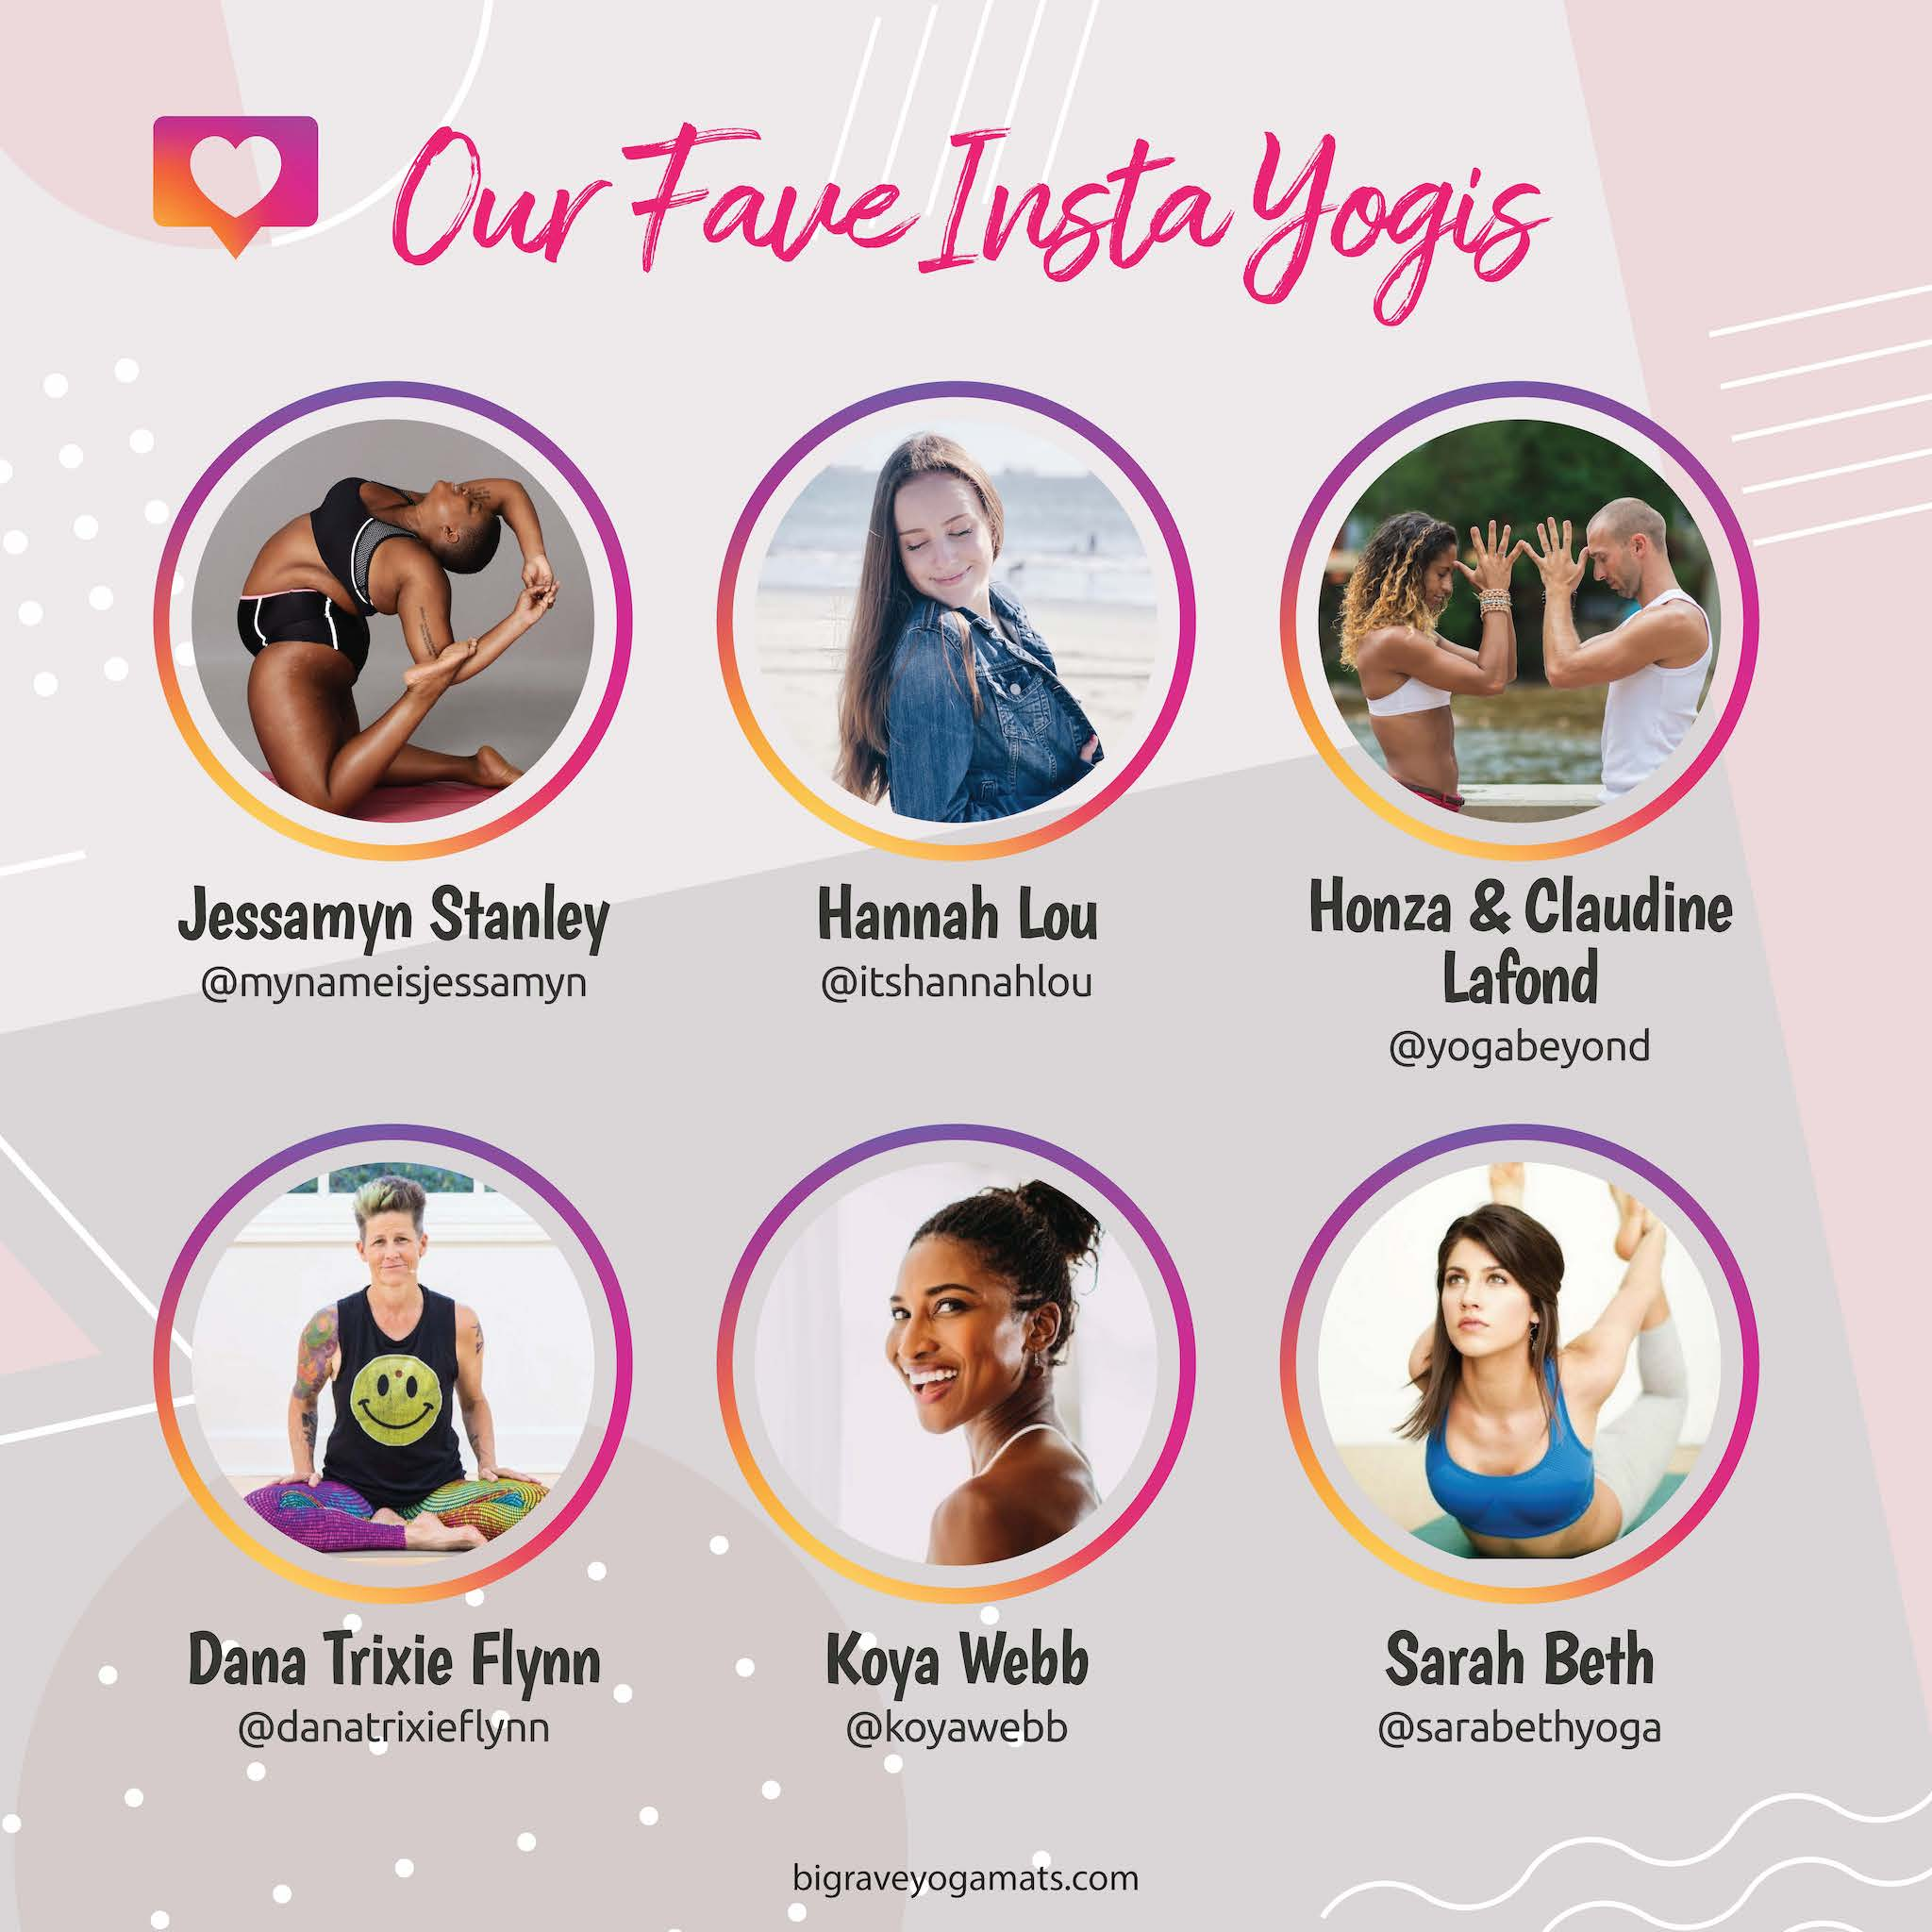 Infographic: Images of the yogis listed below